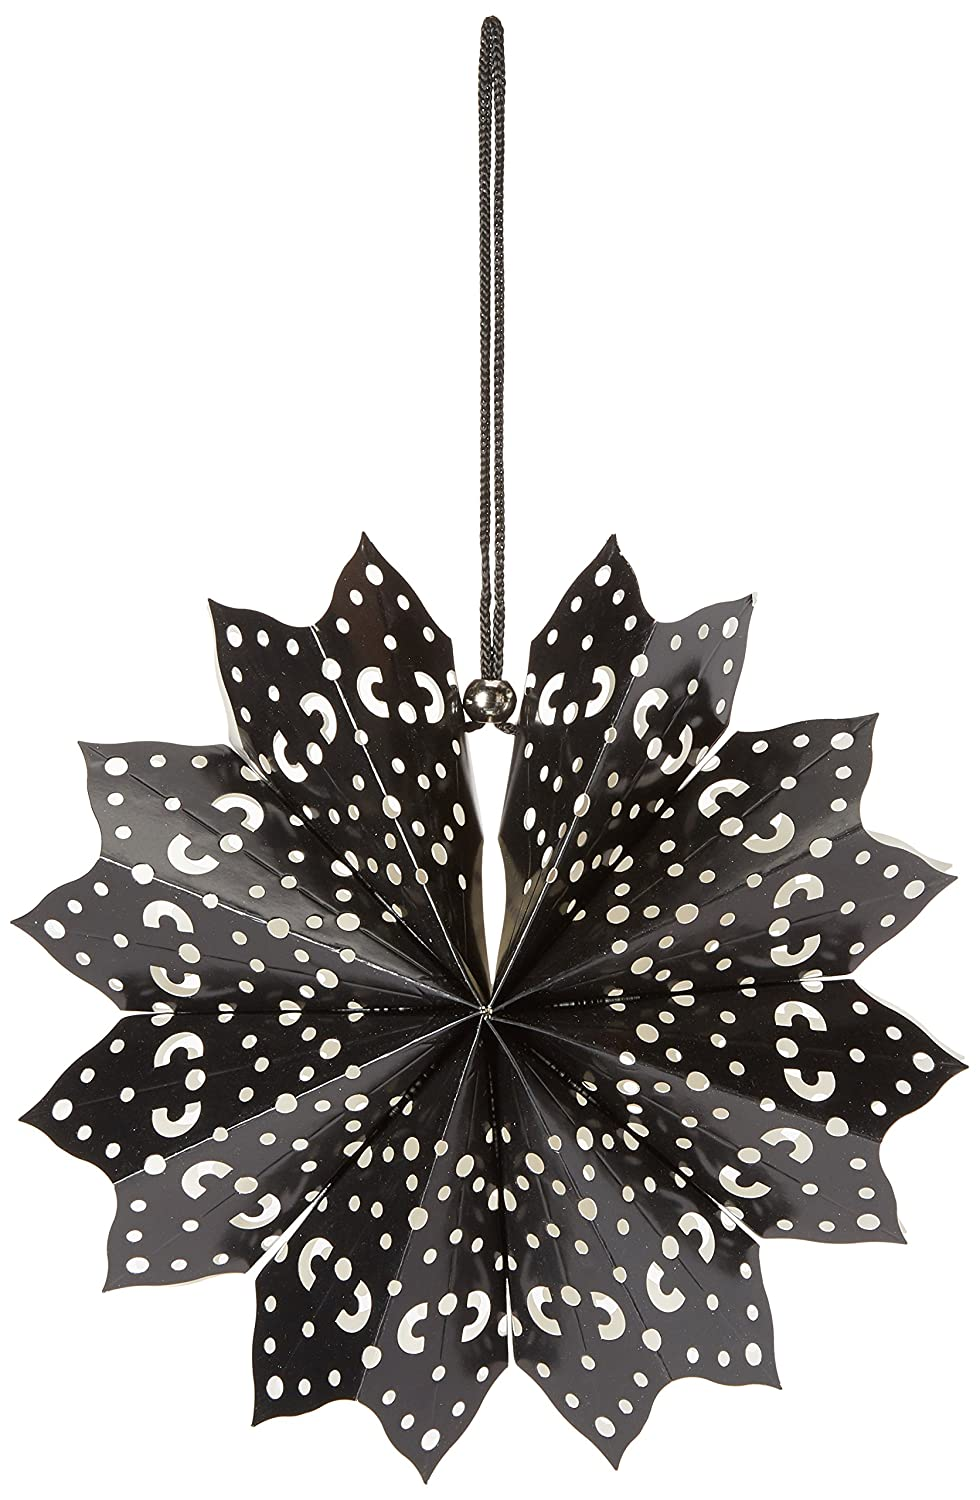 American Crafts 340576 Heidi Swapp 8-Point Star Paper Lantern, 11', Black 11